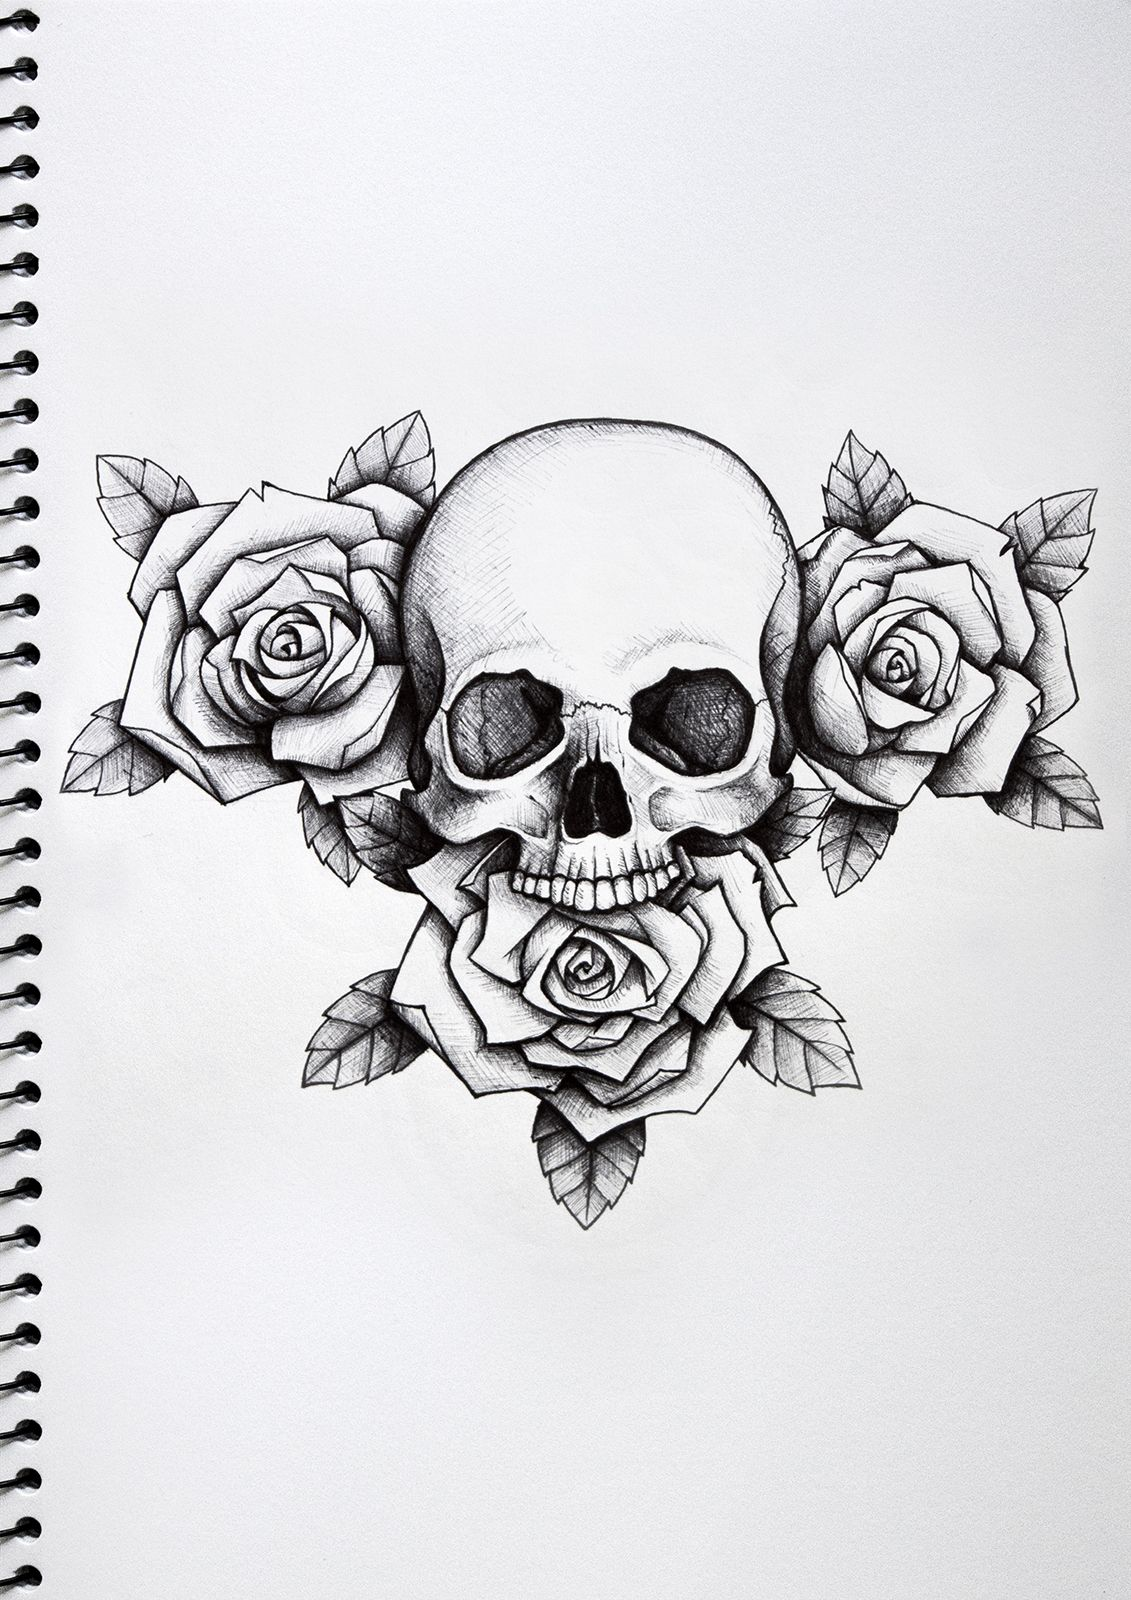 skull and roses tattoo nick davis artist art 224 card deck pinterest tattoo tattoo. Black Bedroom Furniture Sets. Home Design Ideas